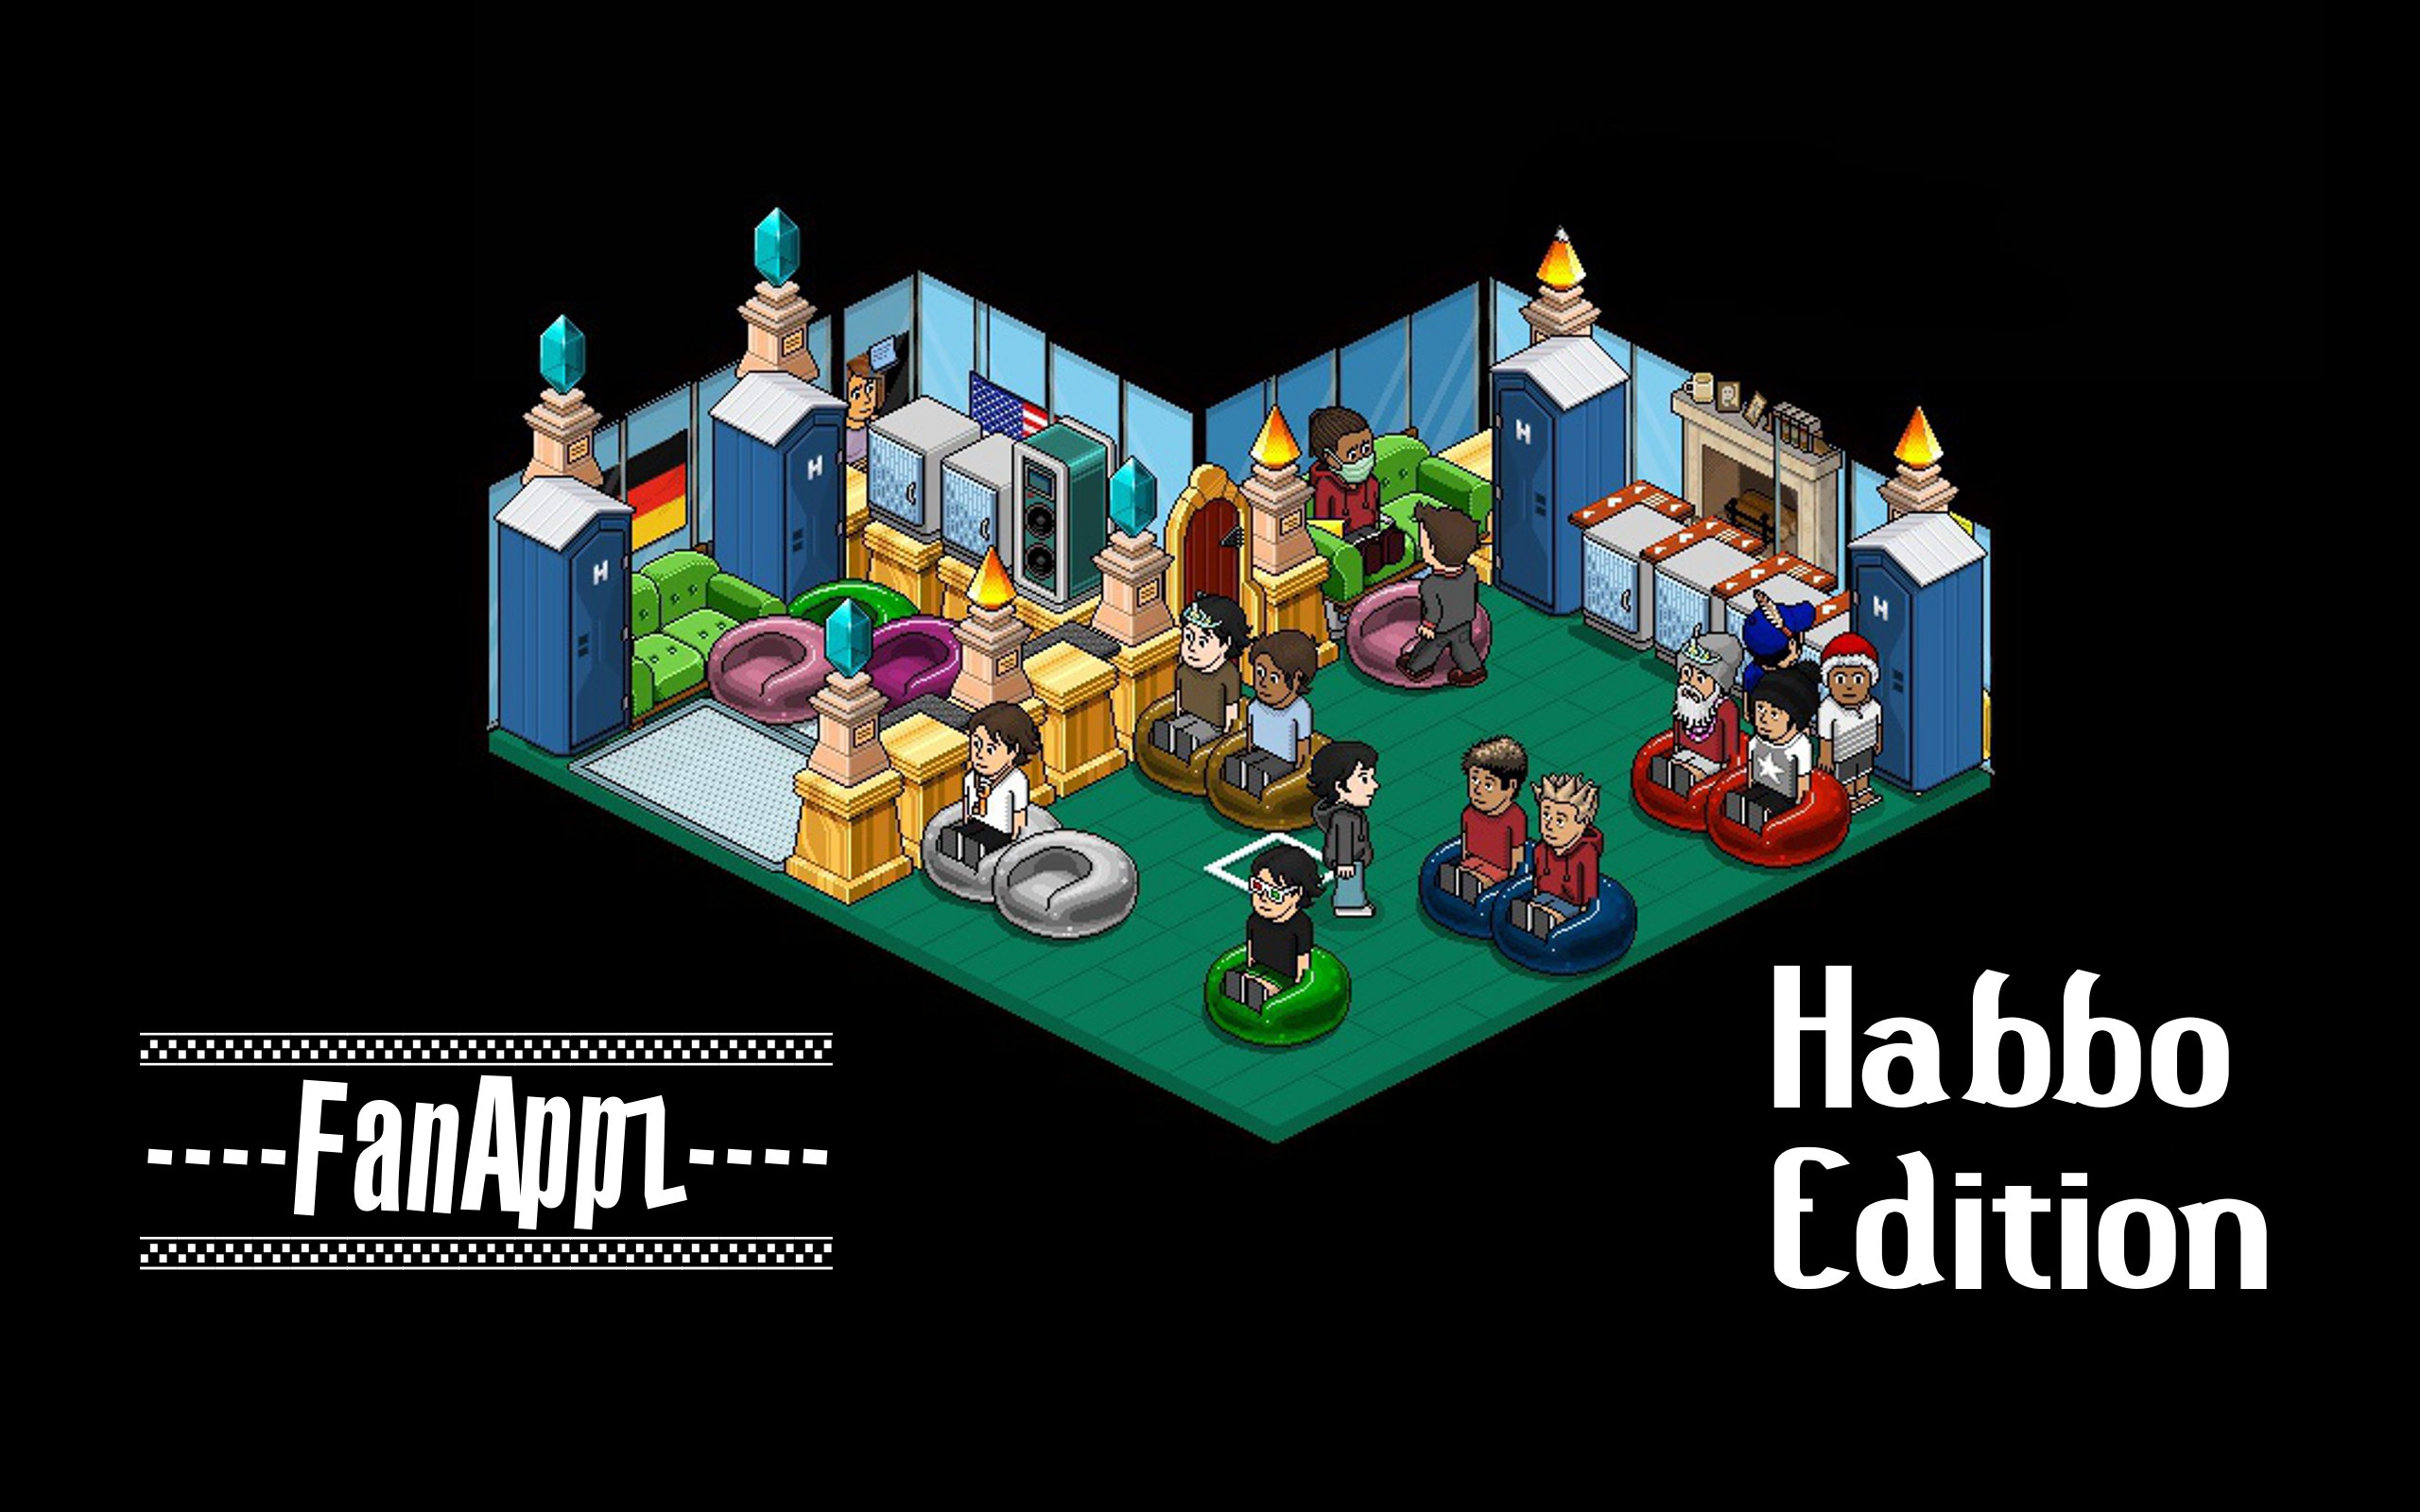 Amazon Fanappz Habbo Edition Appstore For Android